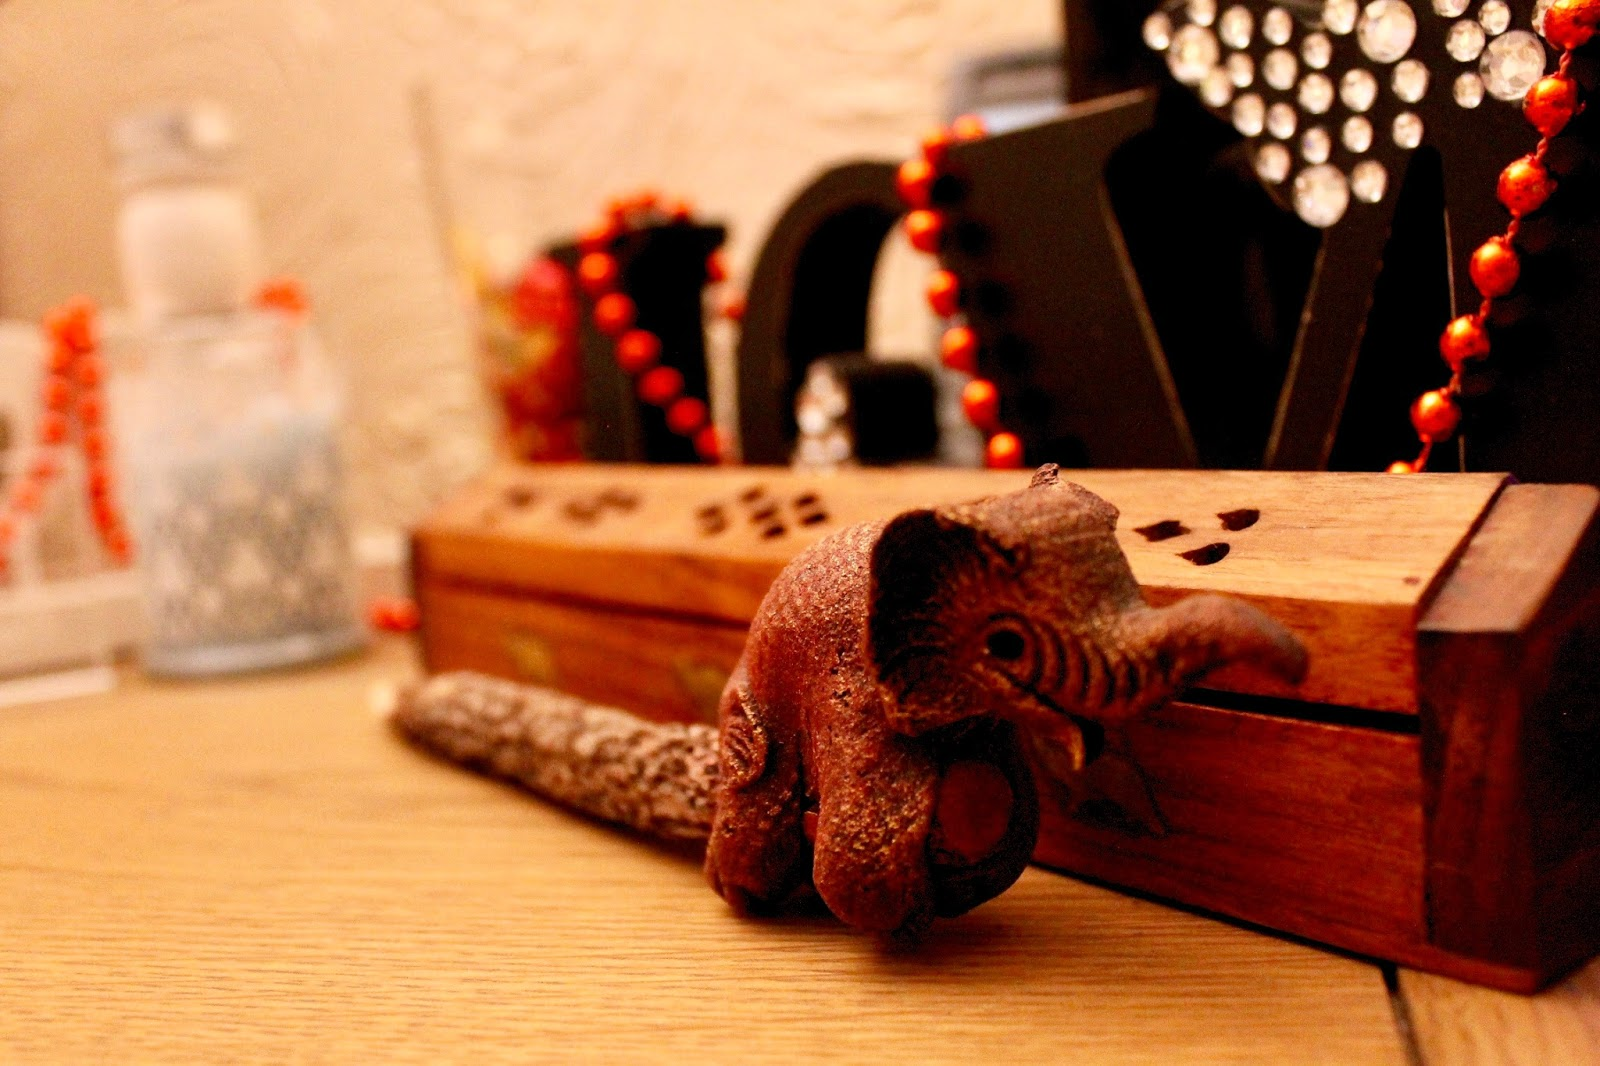 Wooden Interior With Festive Red Beads